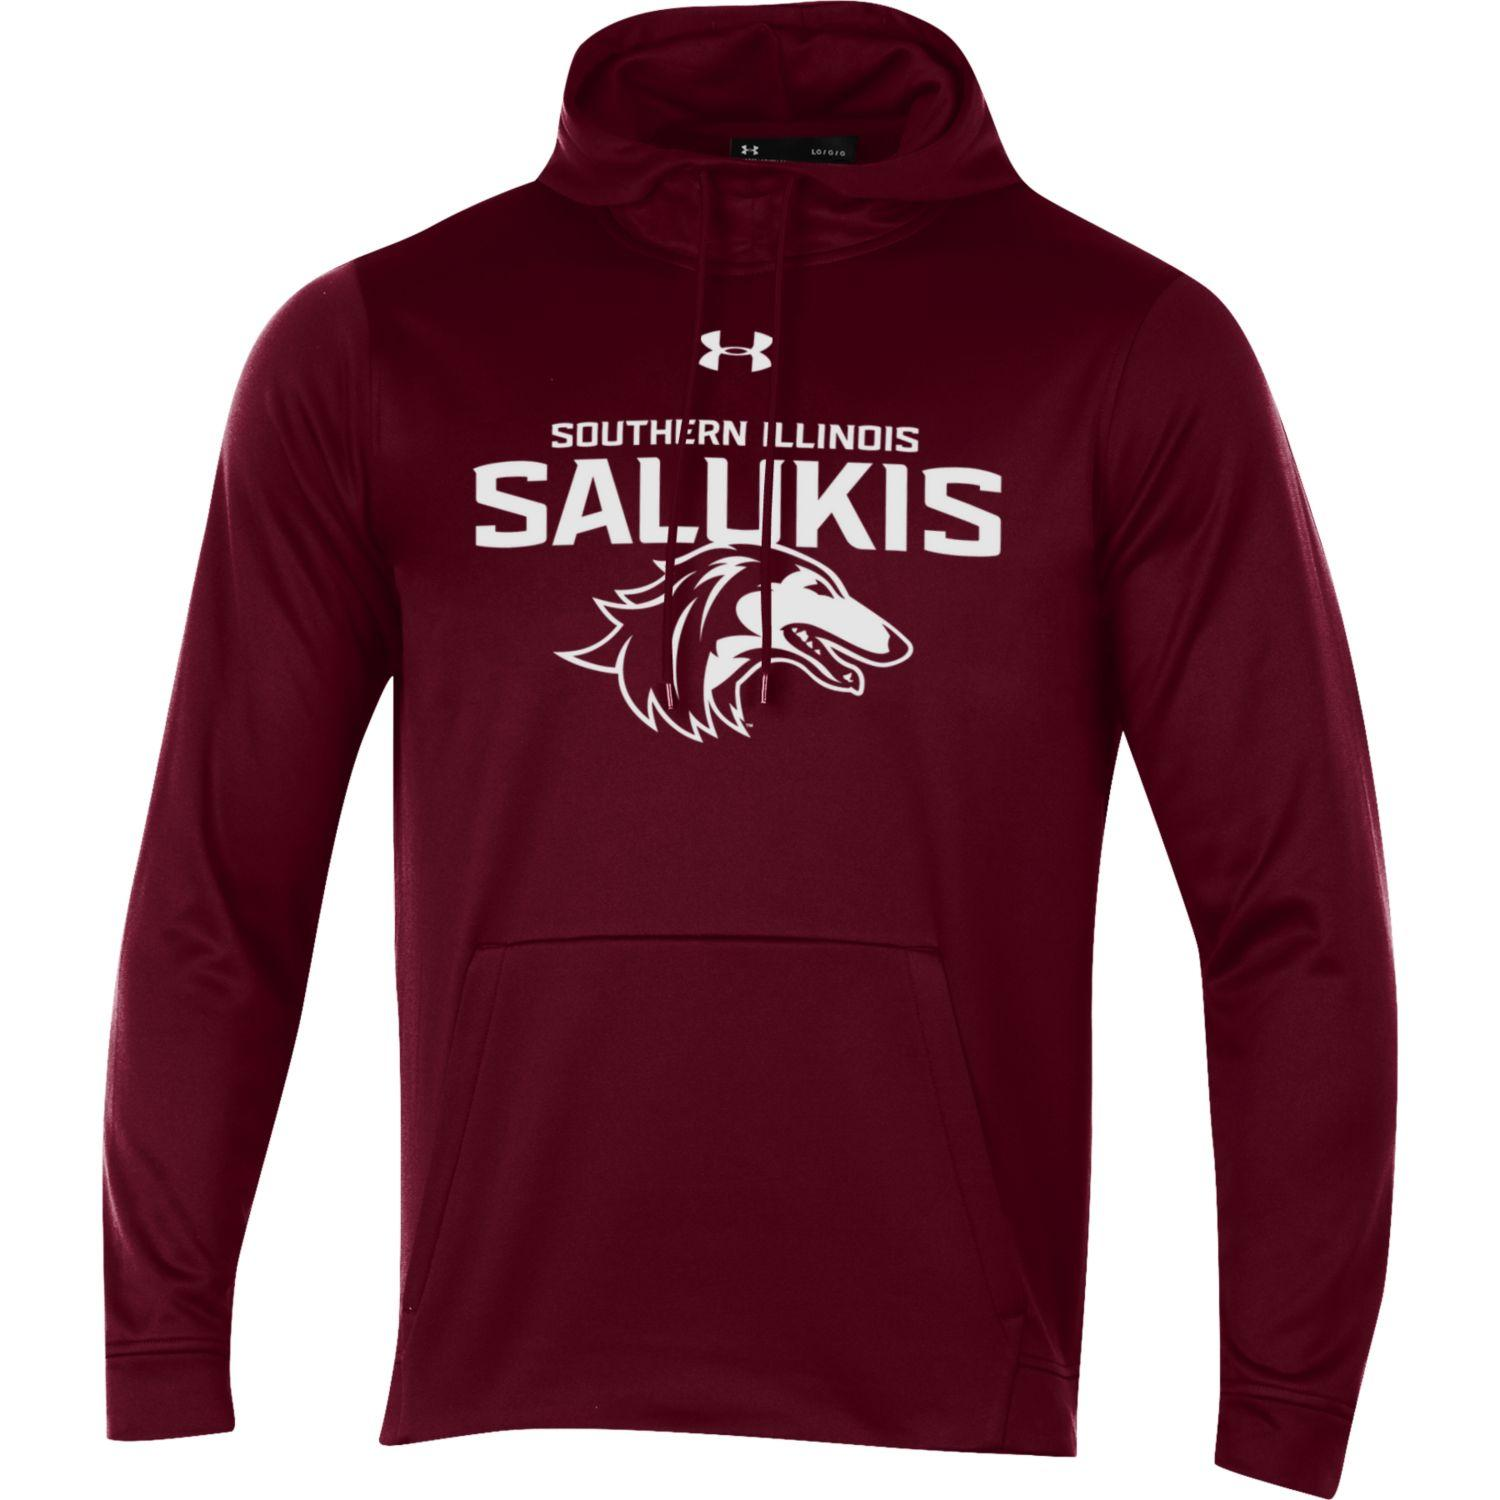 Image for the NEW 2019 ATHLETIC LOGO SOUTHERN ILLINOIS SALUKIS UNDER ARMOUR HOOD product